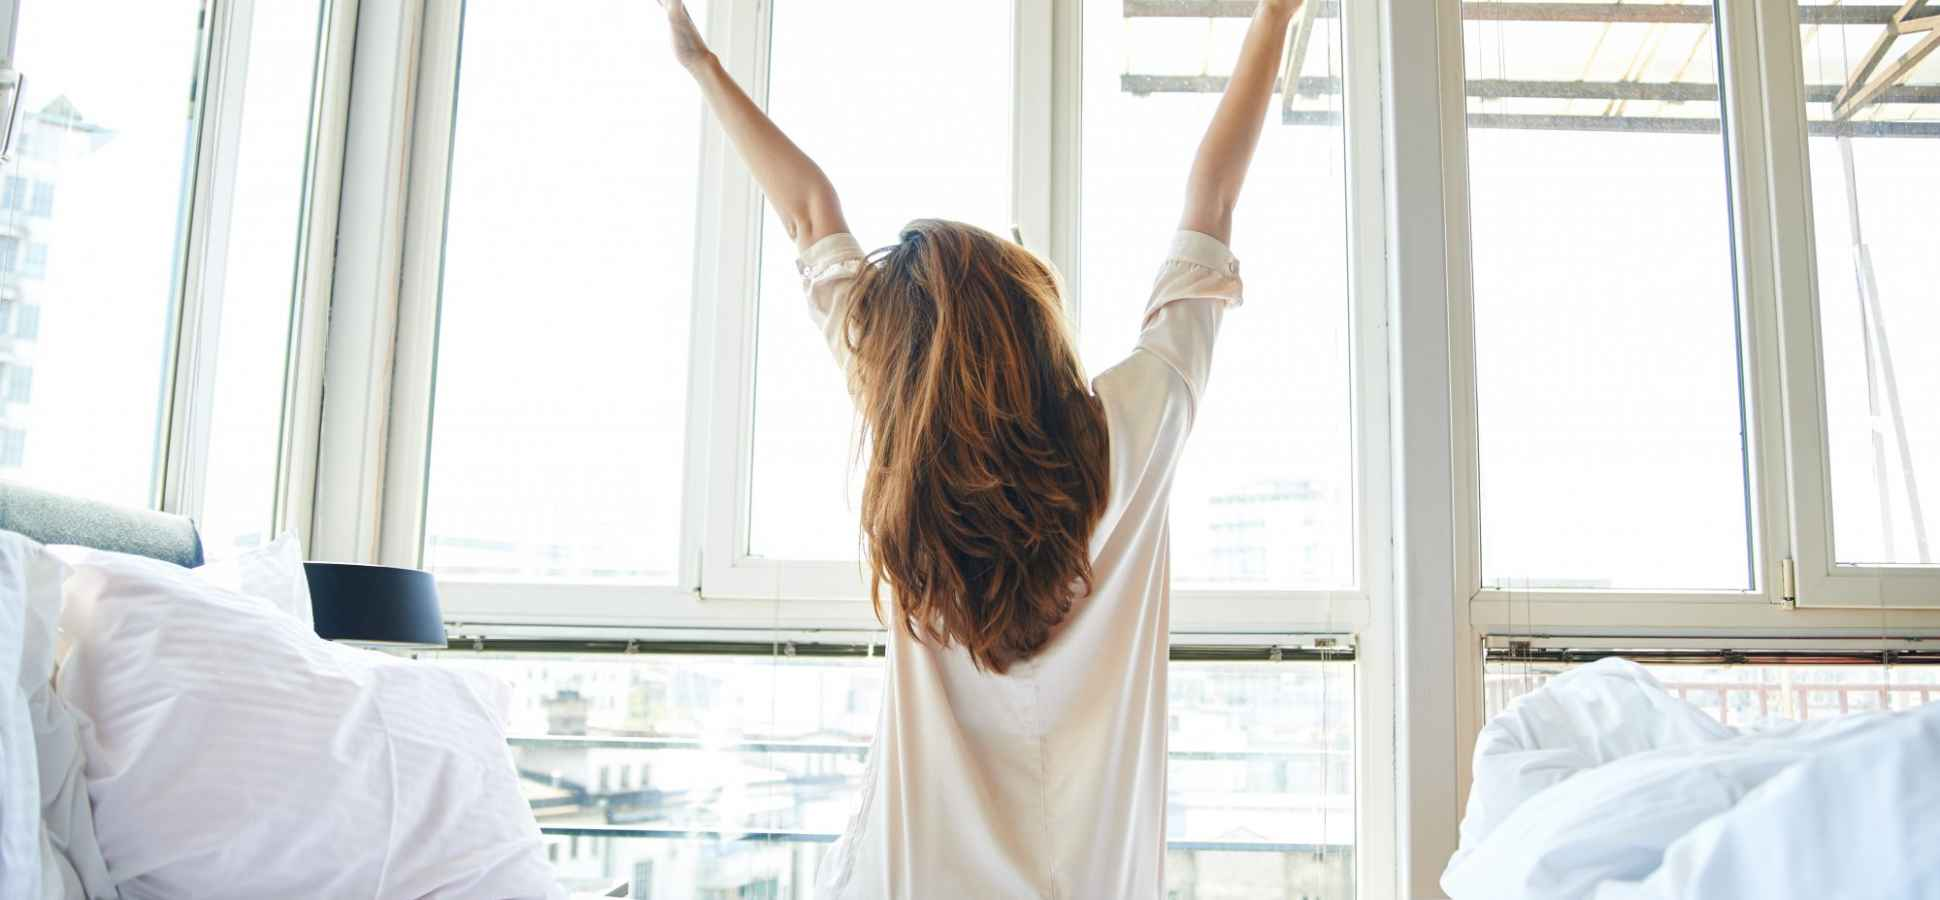 5 Refreshing Things You Should Do Every Sunday Morning (No Excuses)